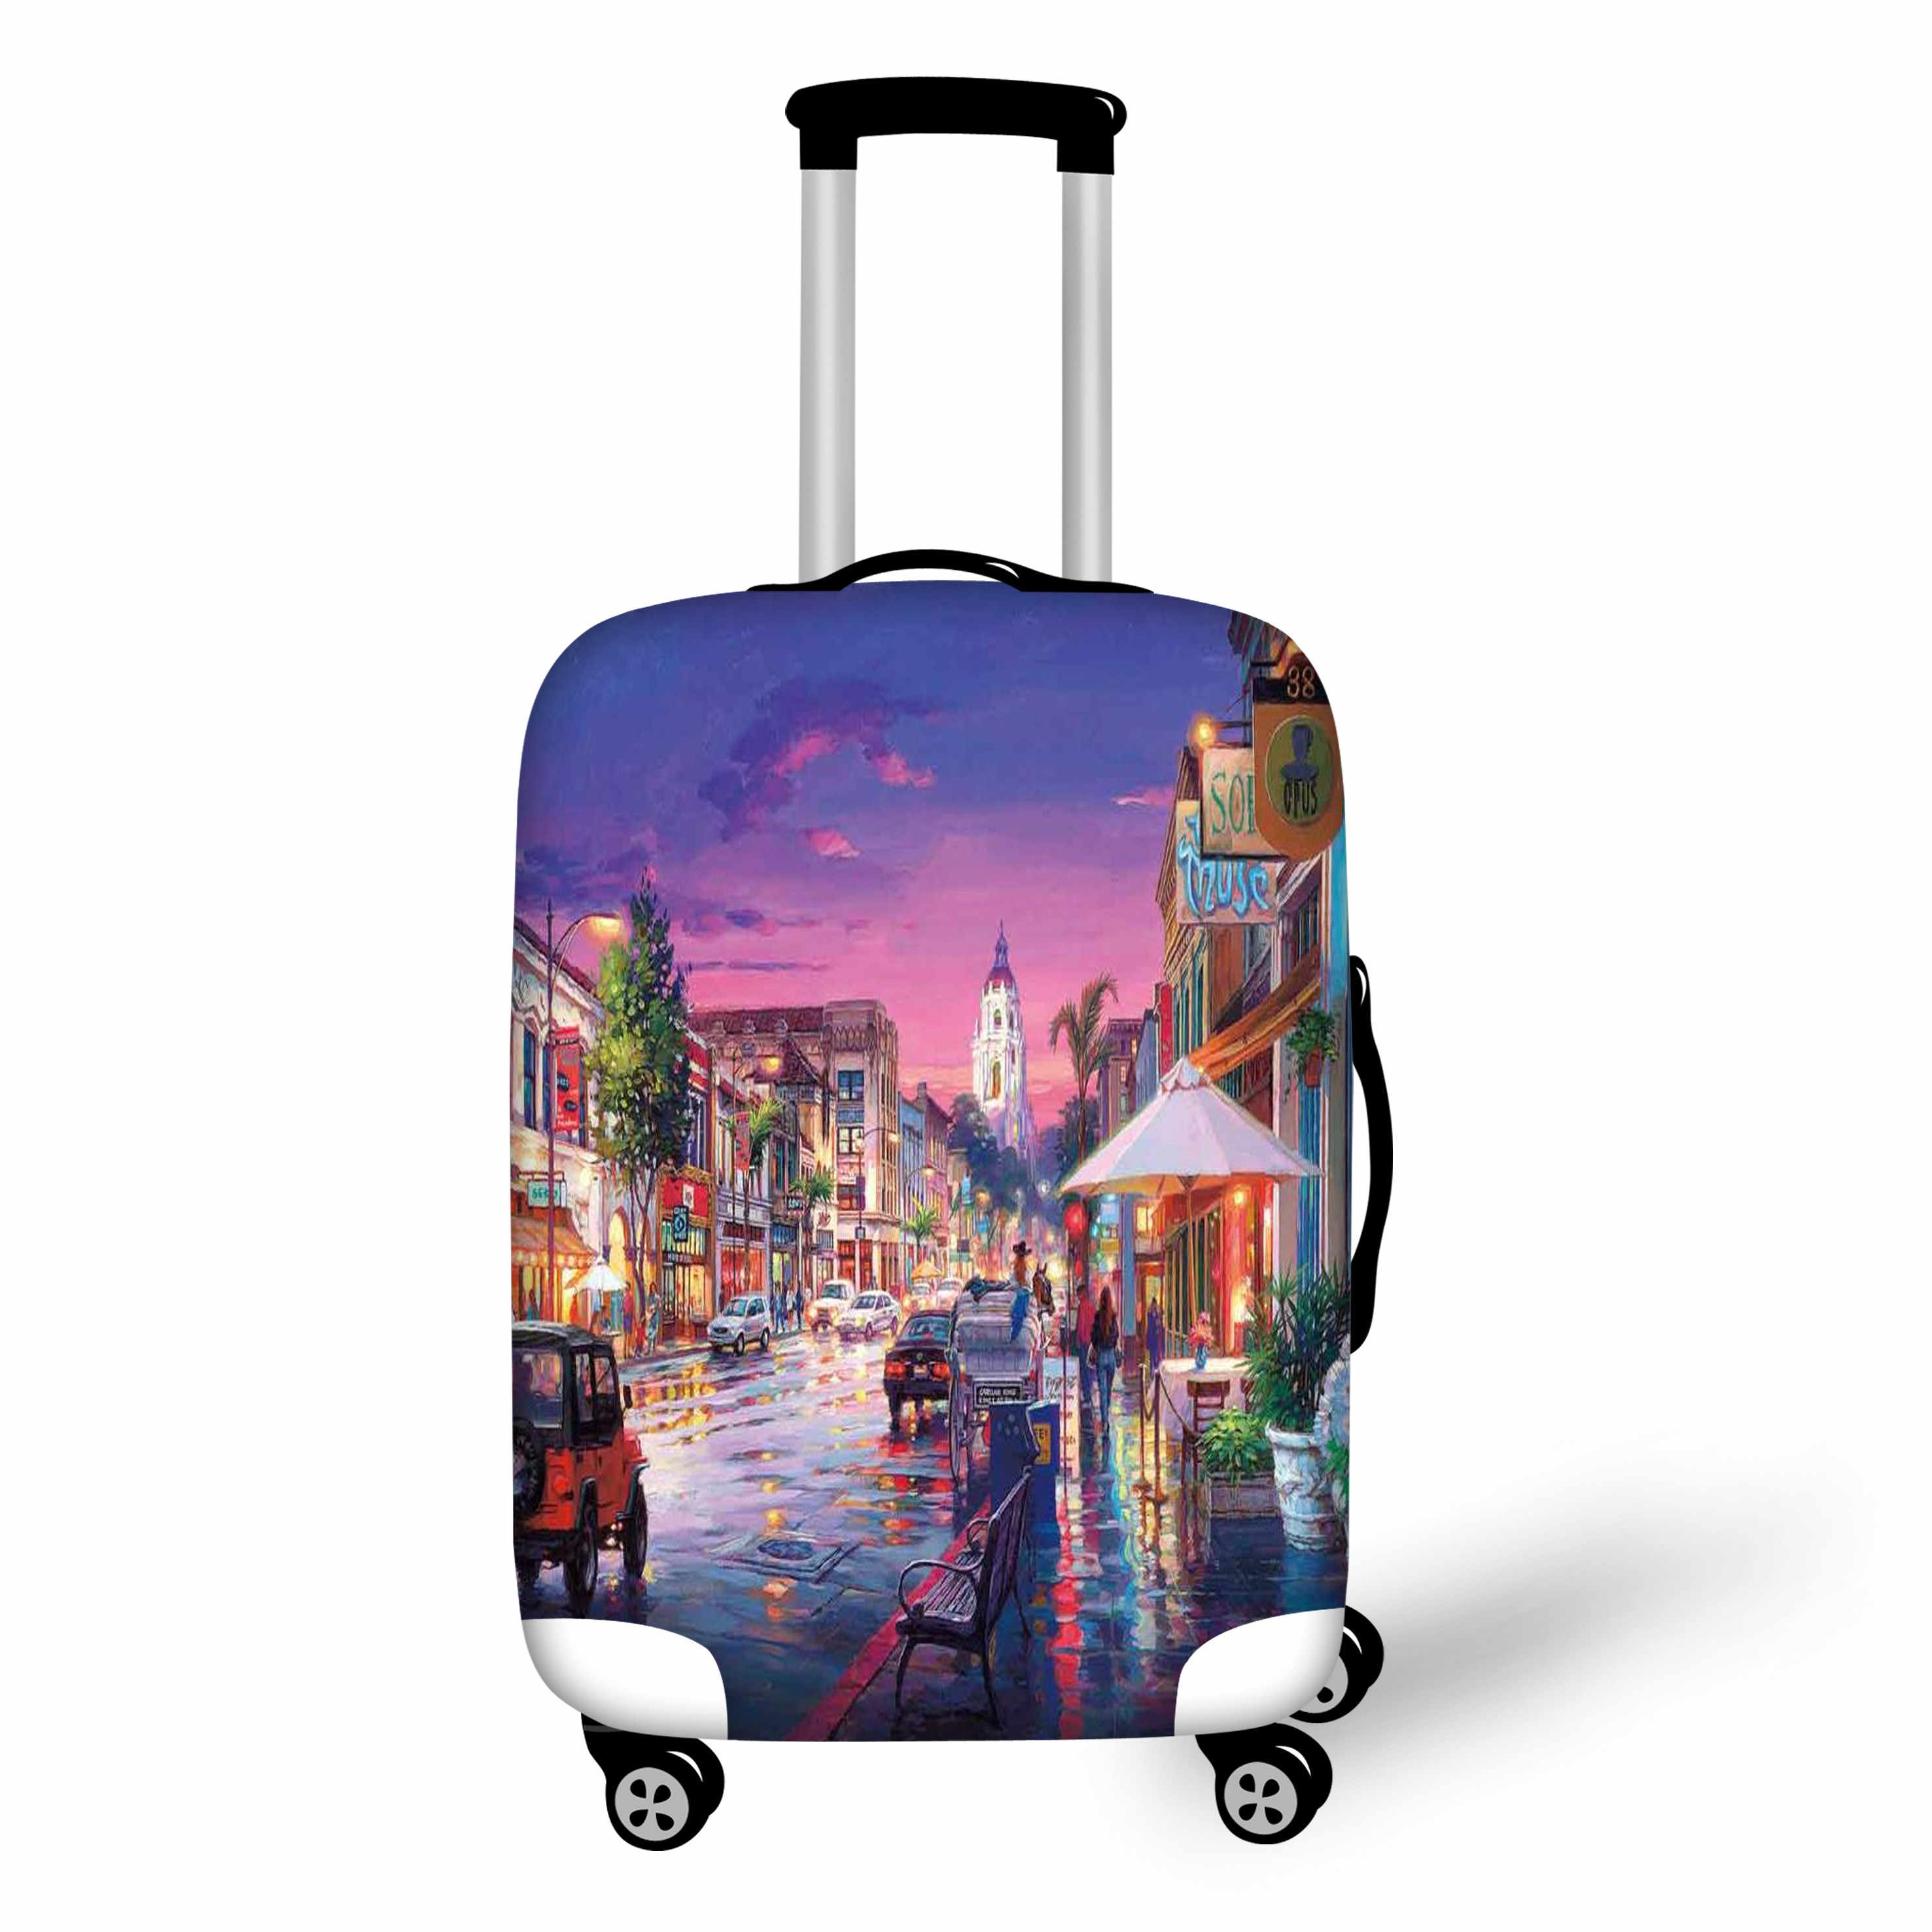 Luggage Protective Covers Landscape Venice Case Cover Travel Accessories Elastic Dust Cover Apply to 18-28 Suitcase